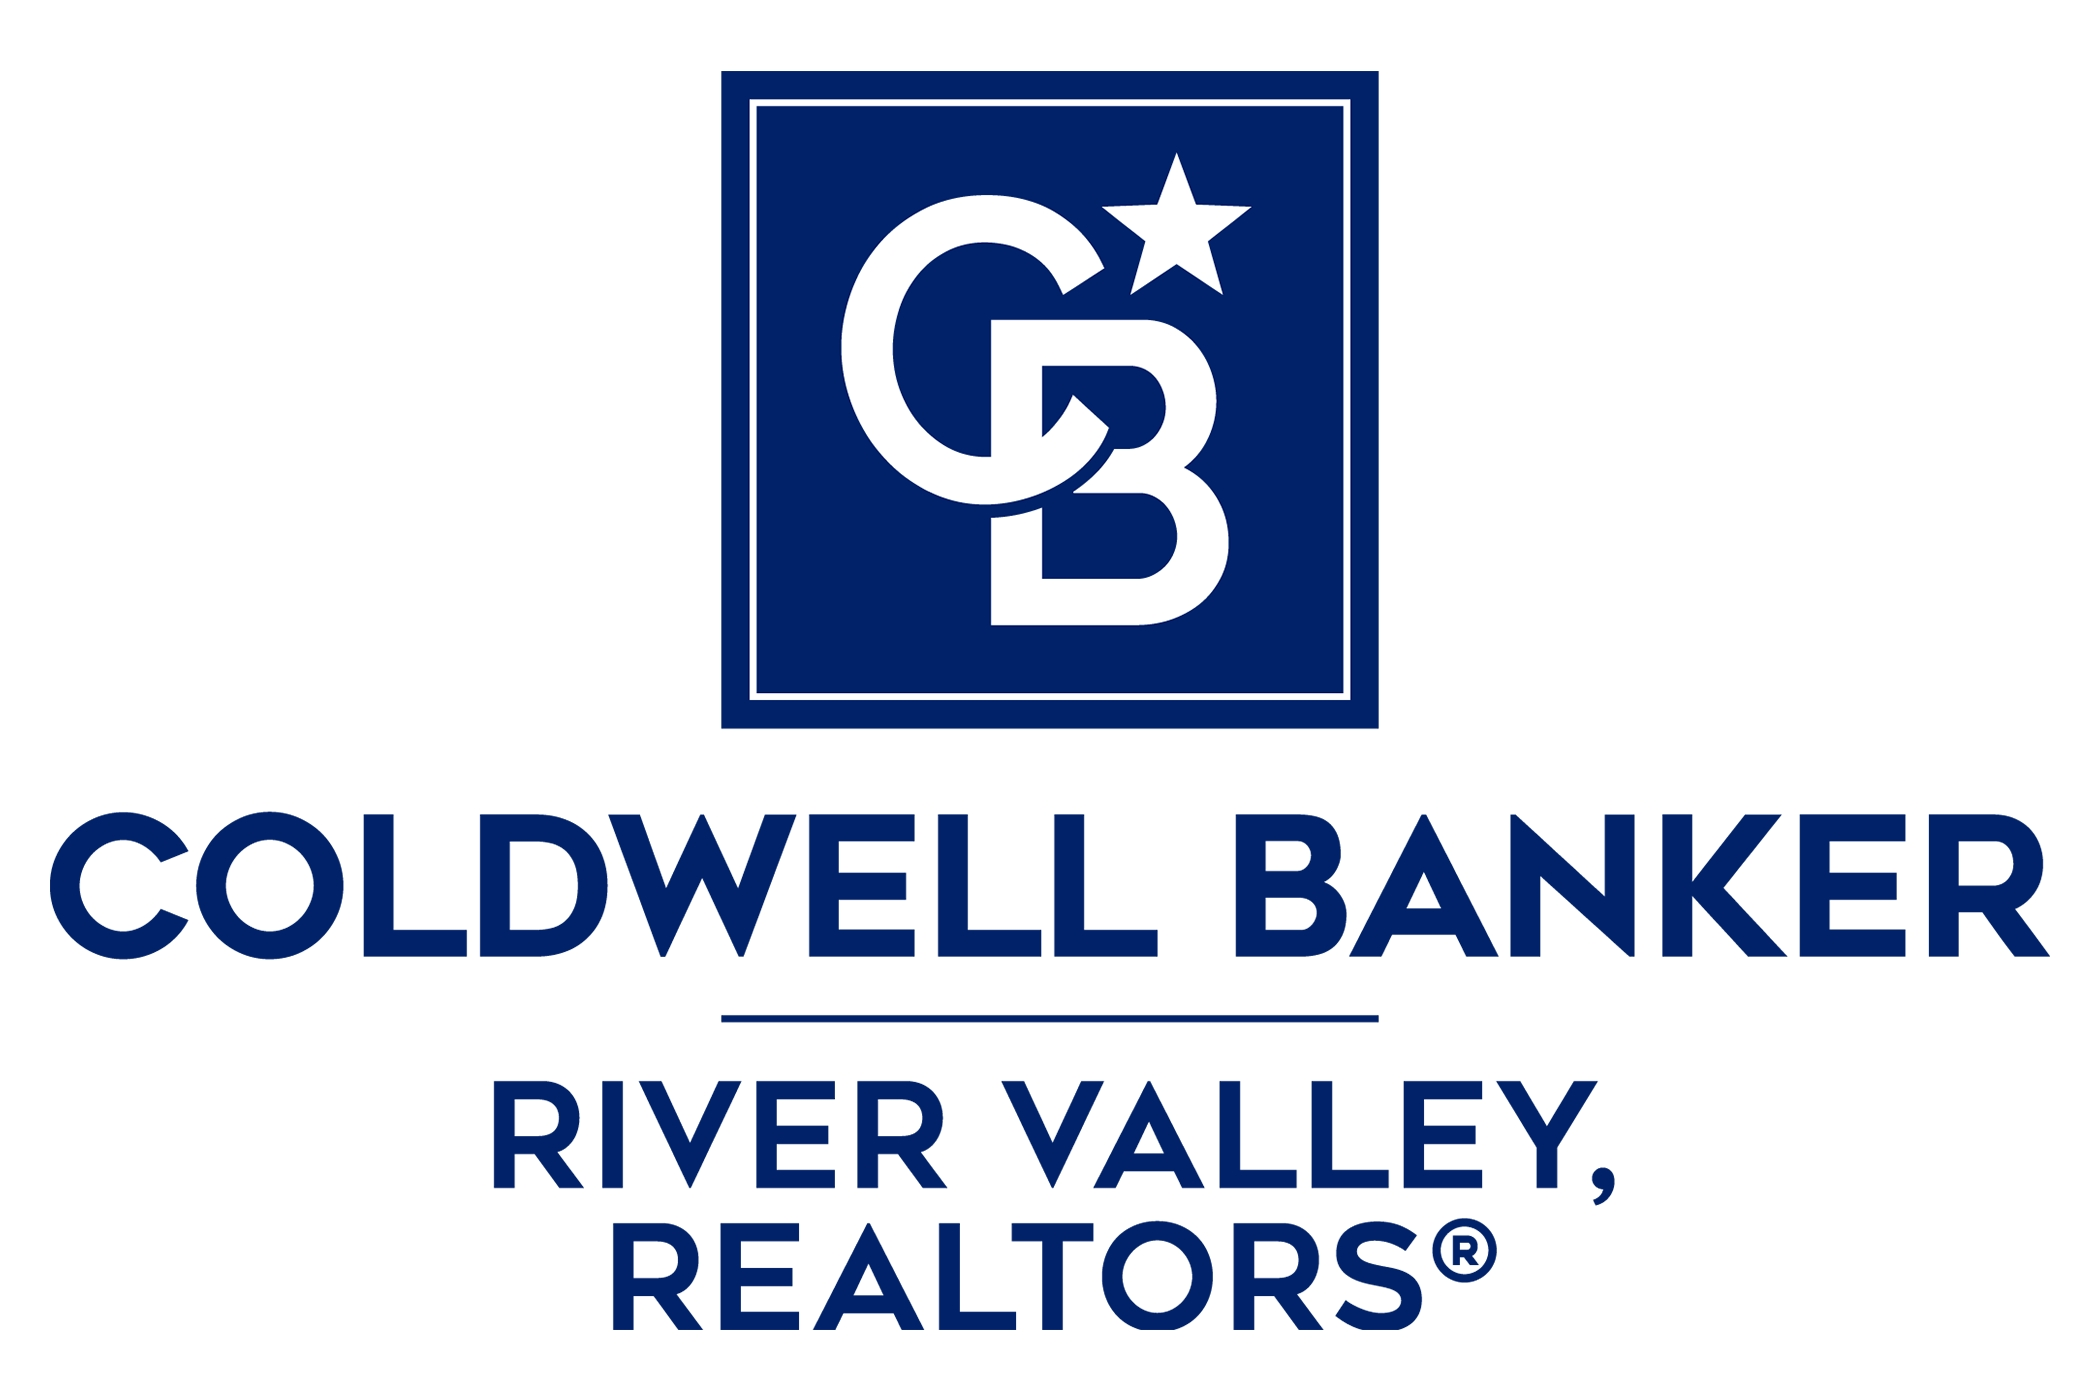 Ryan Olson - Coldwell Banker River Valley, REALTORS Logo